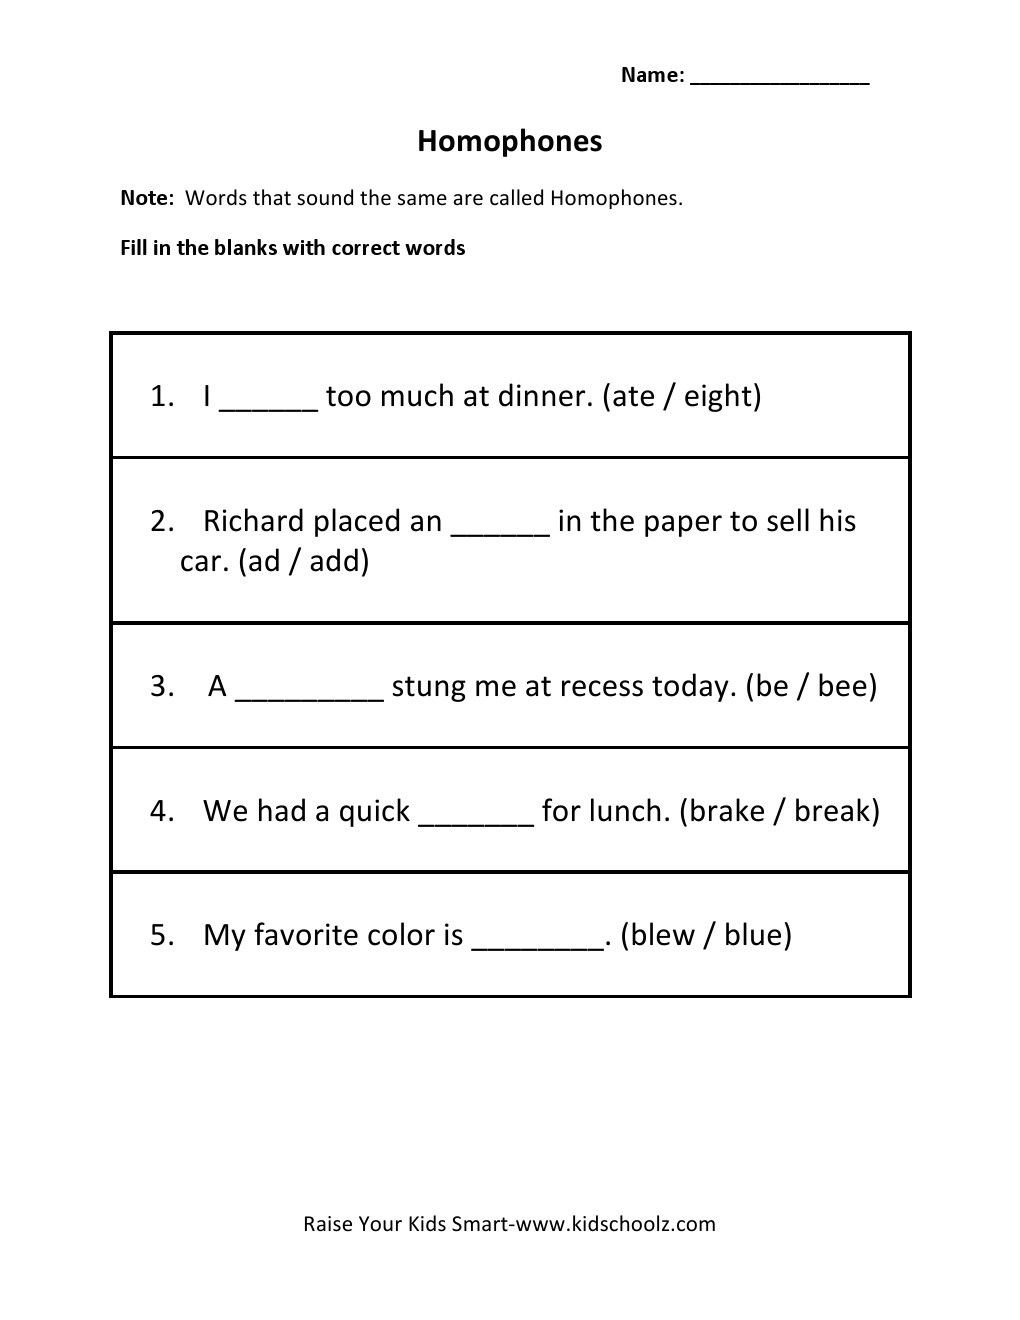 5th Grade Economics Worksheet Wp Content 2014 09 Homophones 1